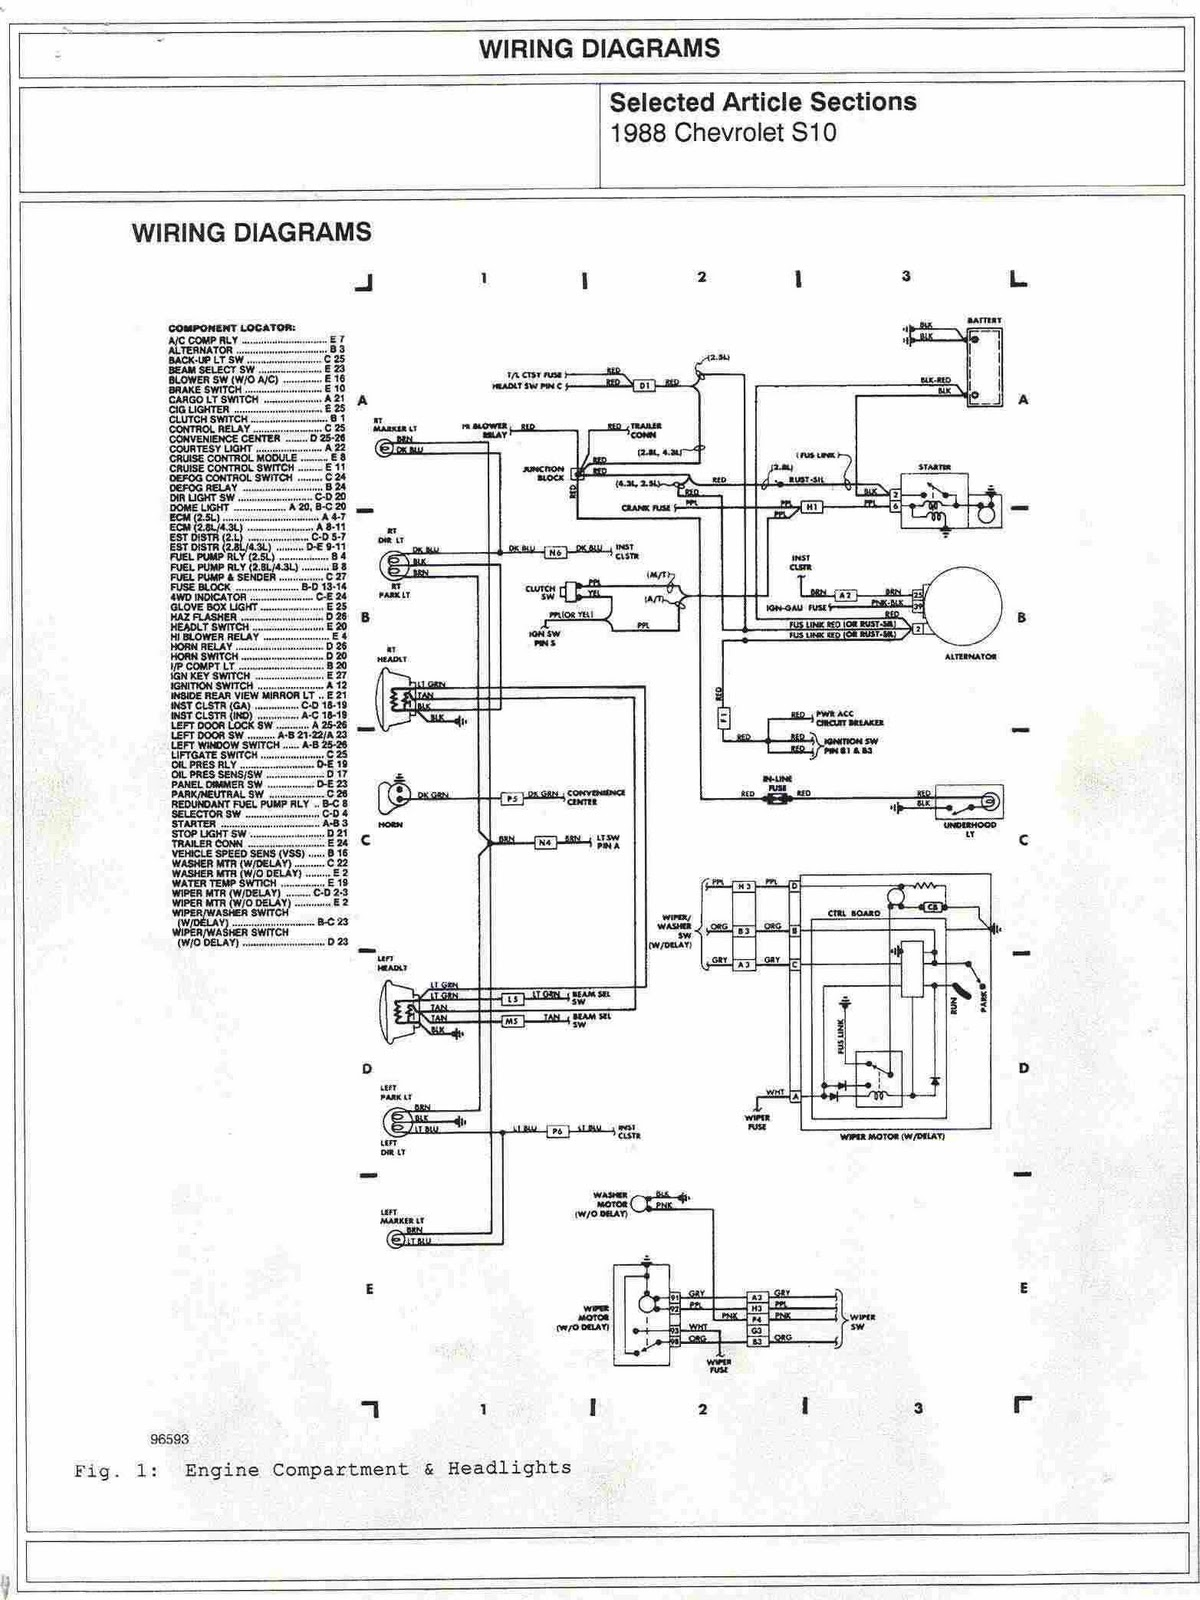 Turn Signal Wiring Diagram For 2002 Chevy S10 Pick Up Library 1965 Ford F100 97 Headlight 31 Images 65 Truck 1988